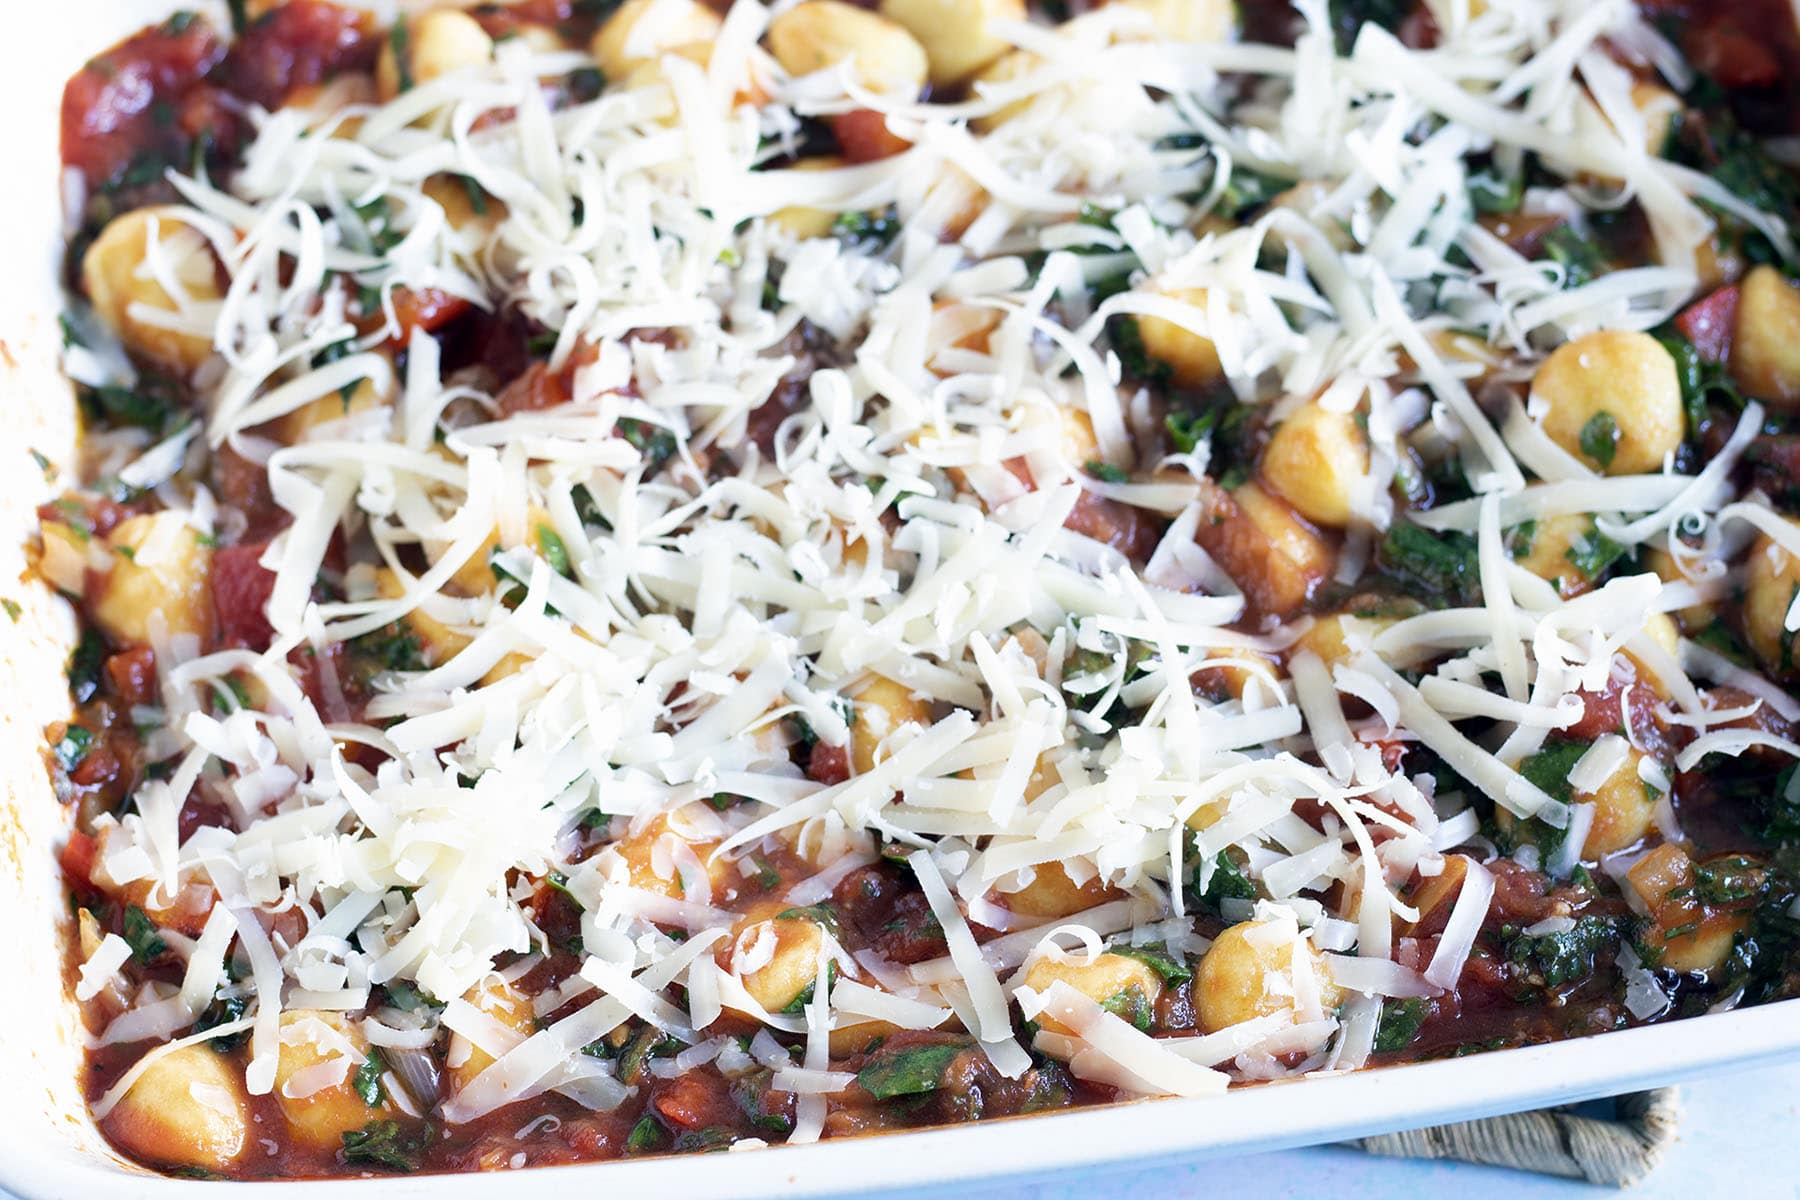 unbaked gnocchi in roasting dish with tomato and spinach sauce topped with grated cheese